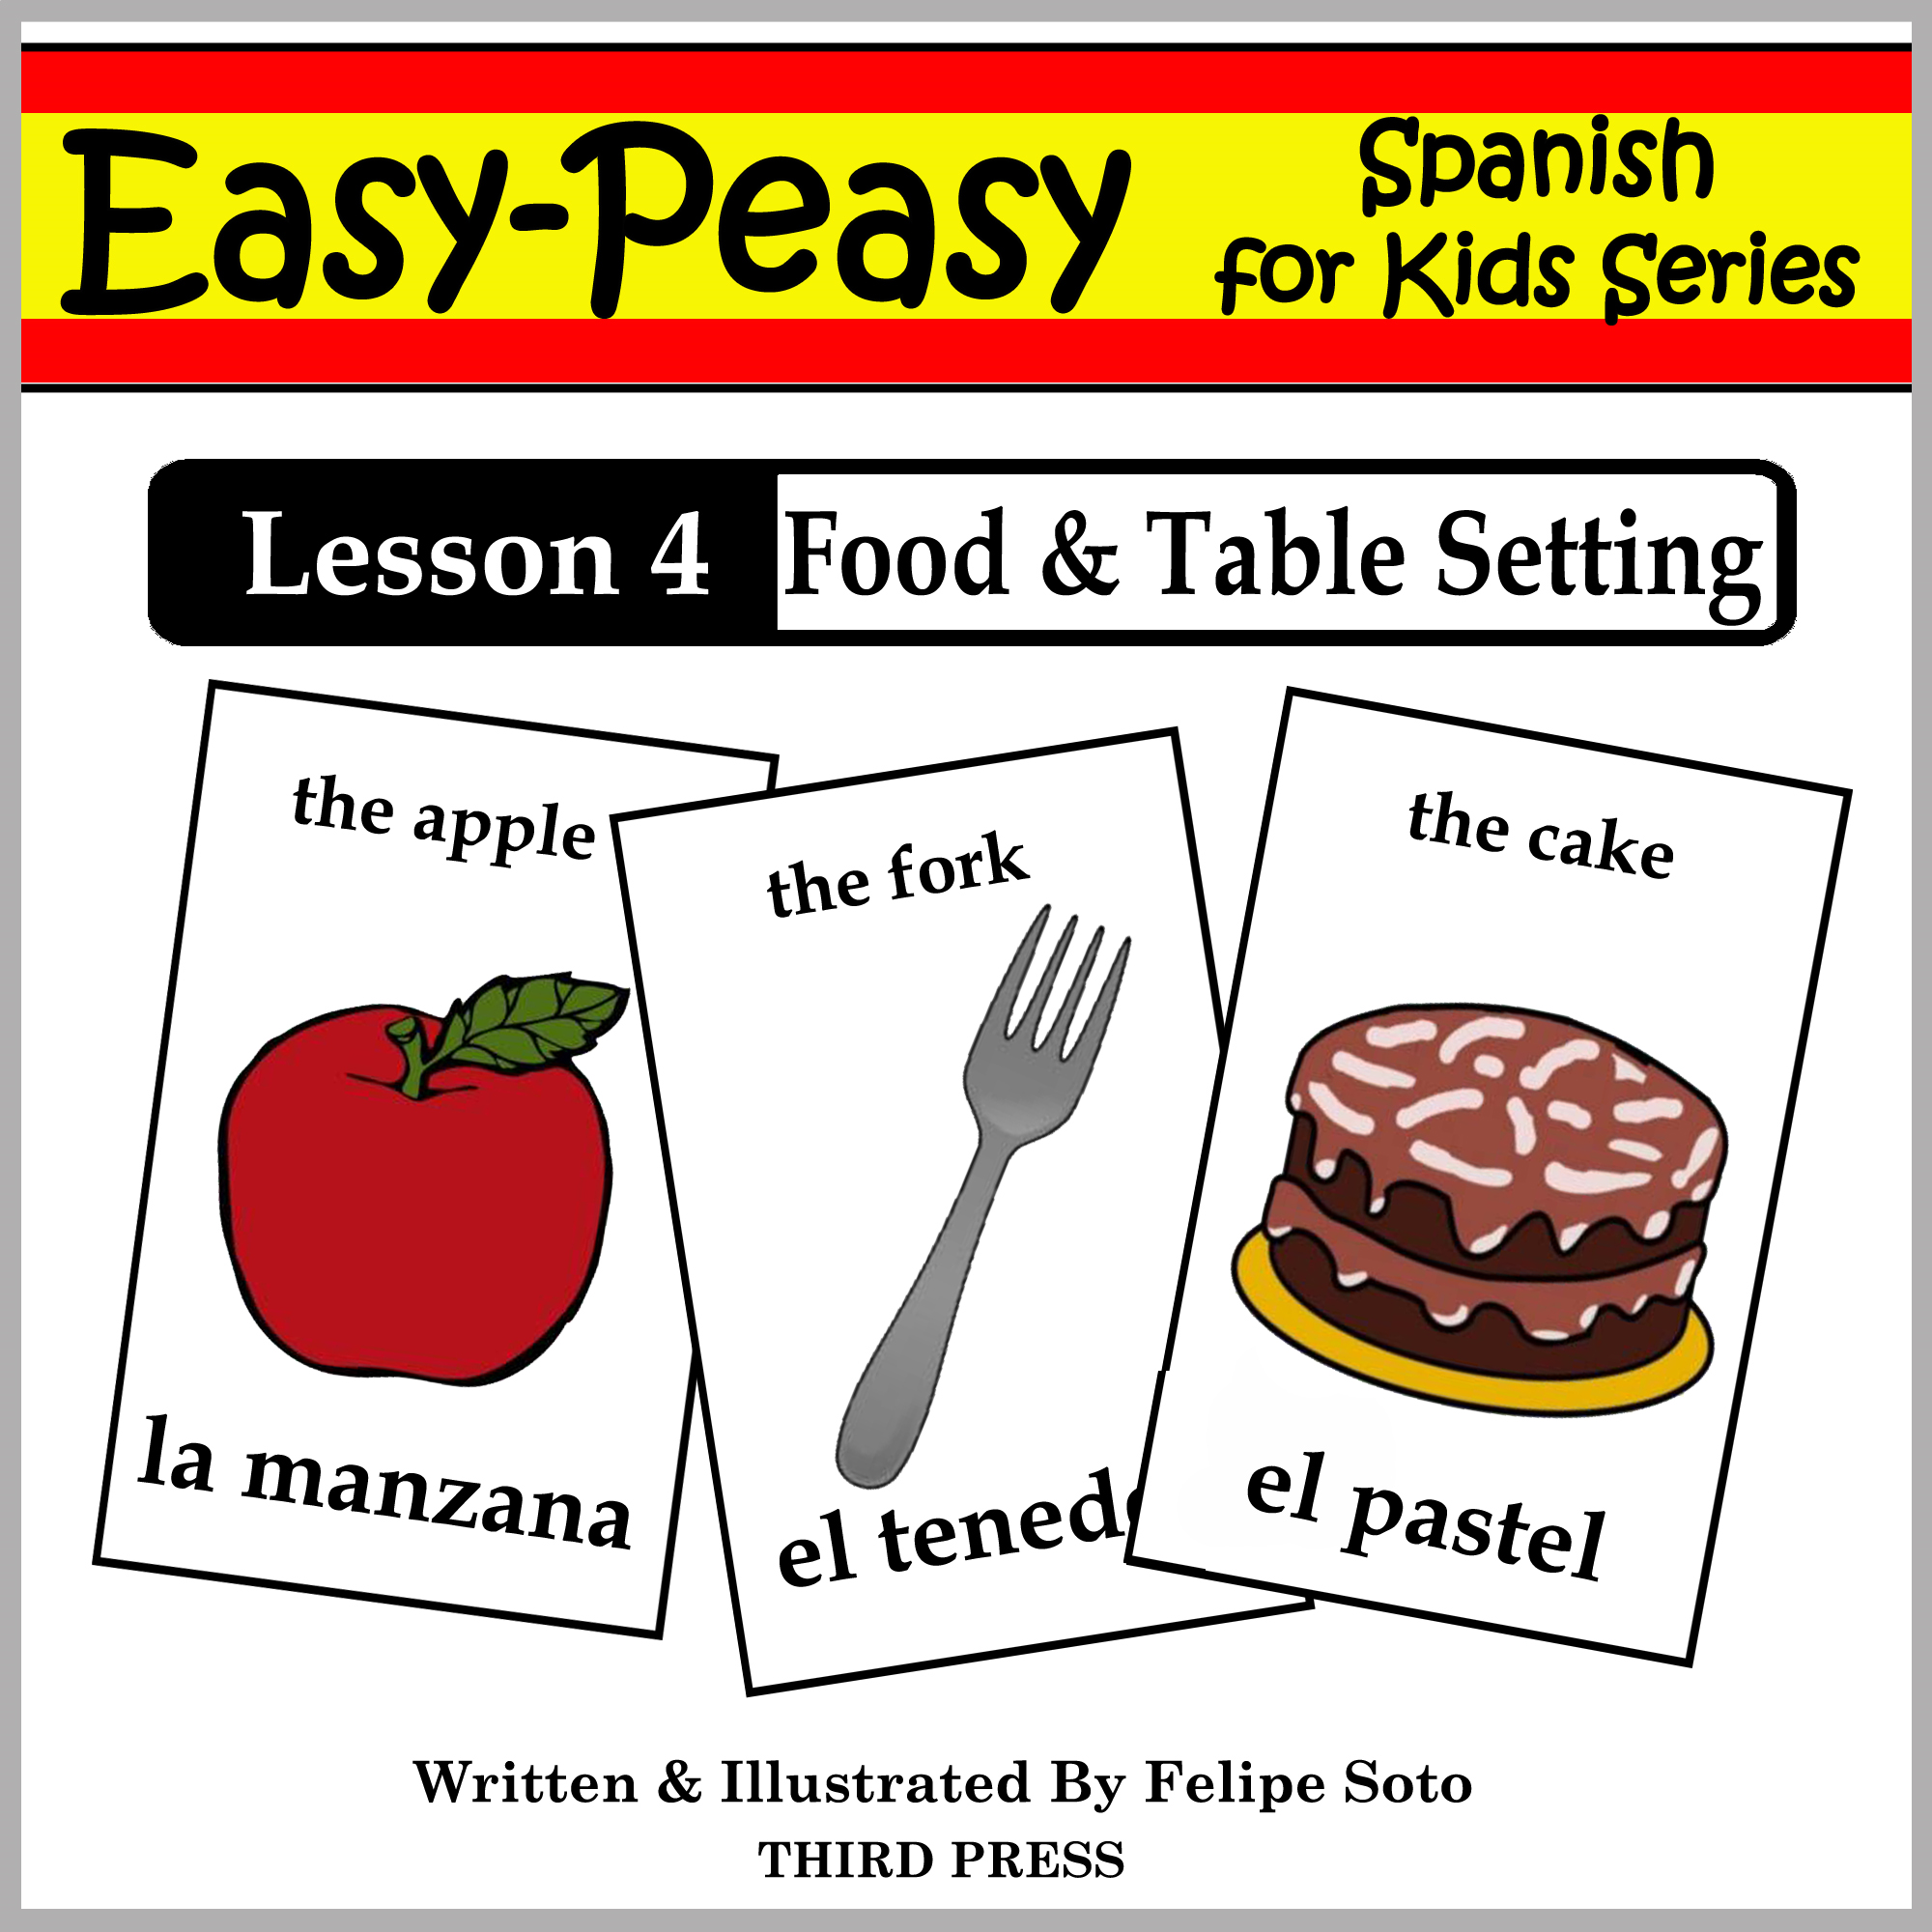 Spanish Lesson 4: Food & Table Setting